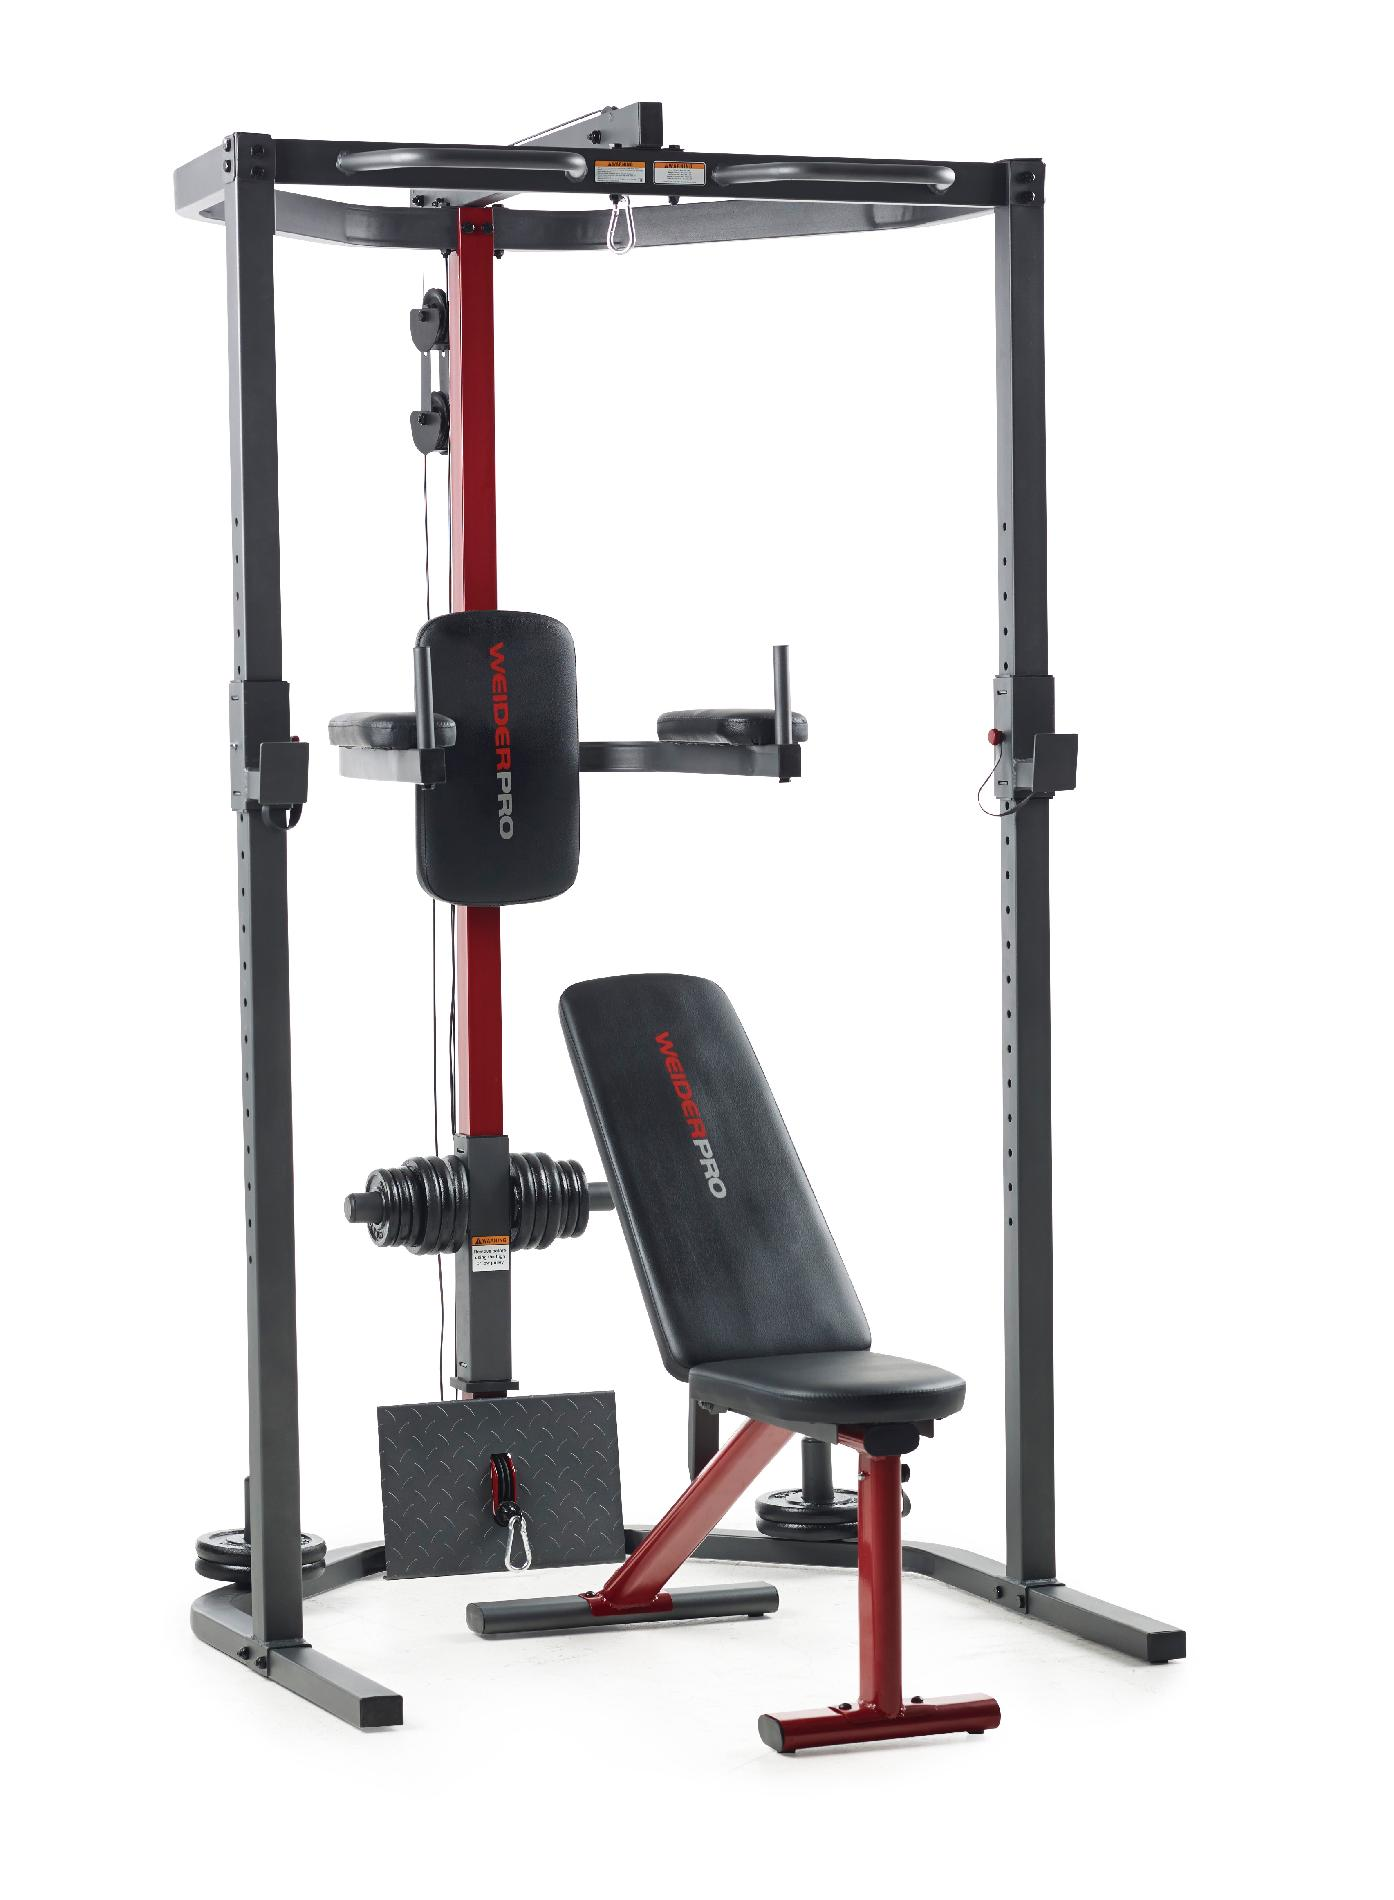 Weider Pro Multi Position Utility Bench